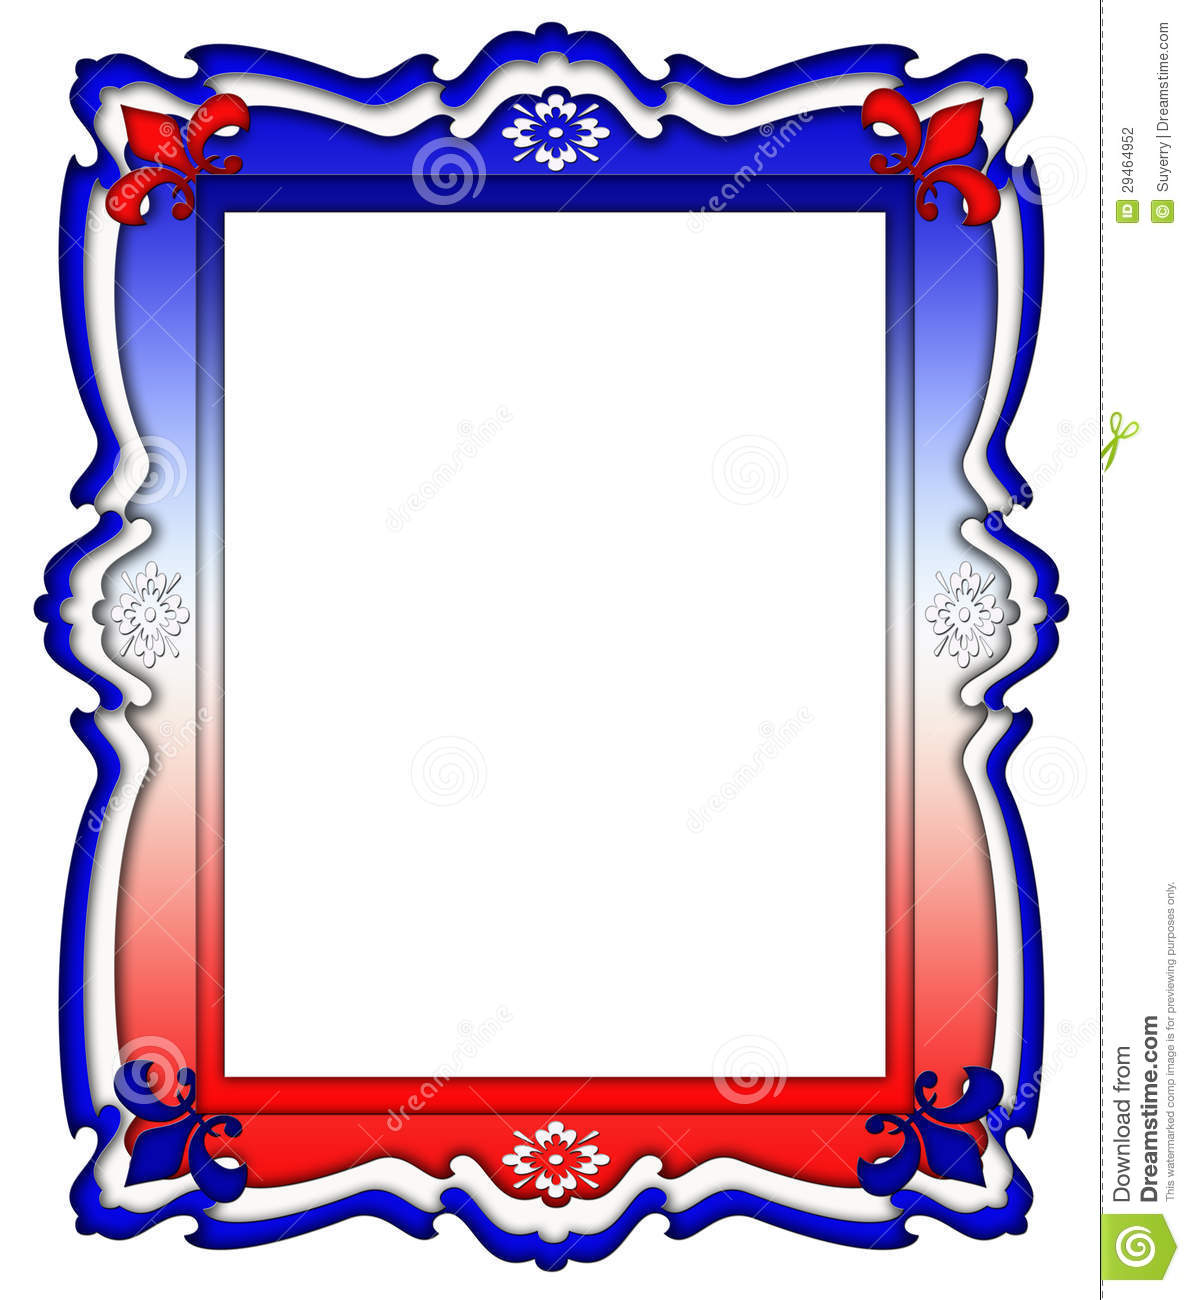 Red White And Blue Frame Border Stock Photography